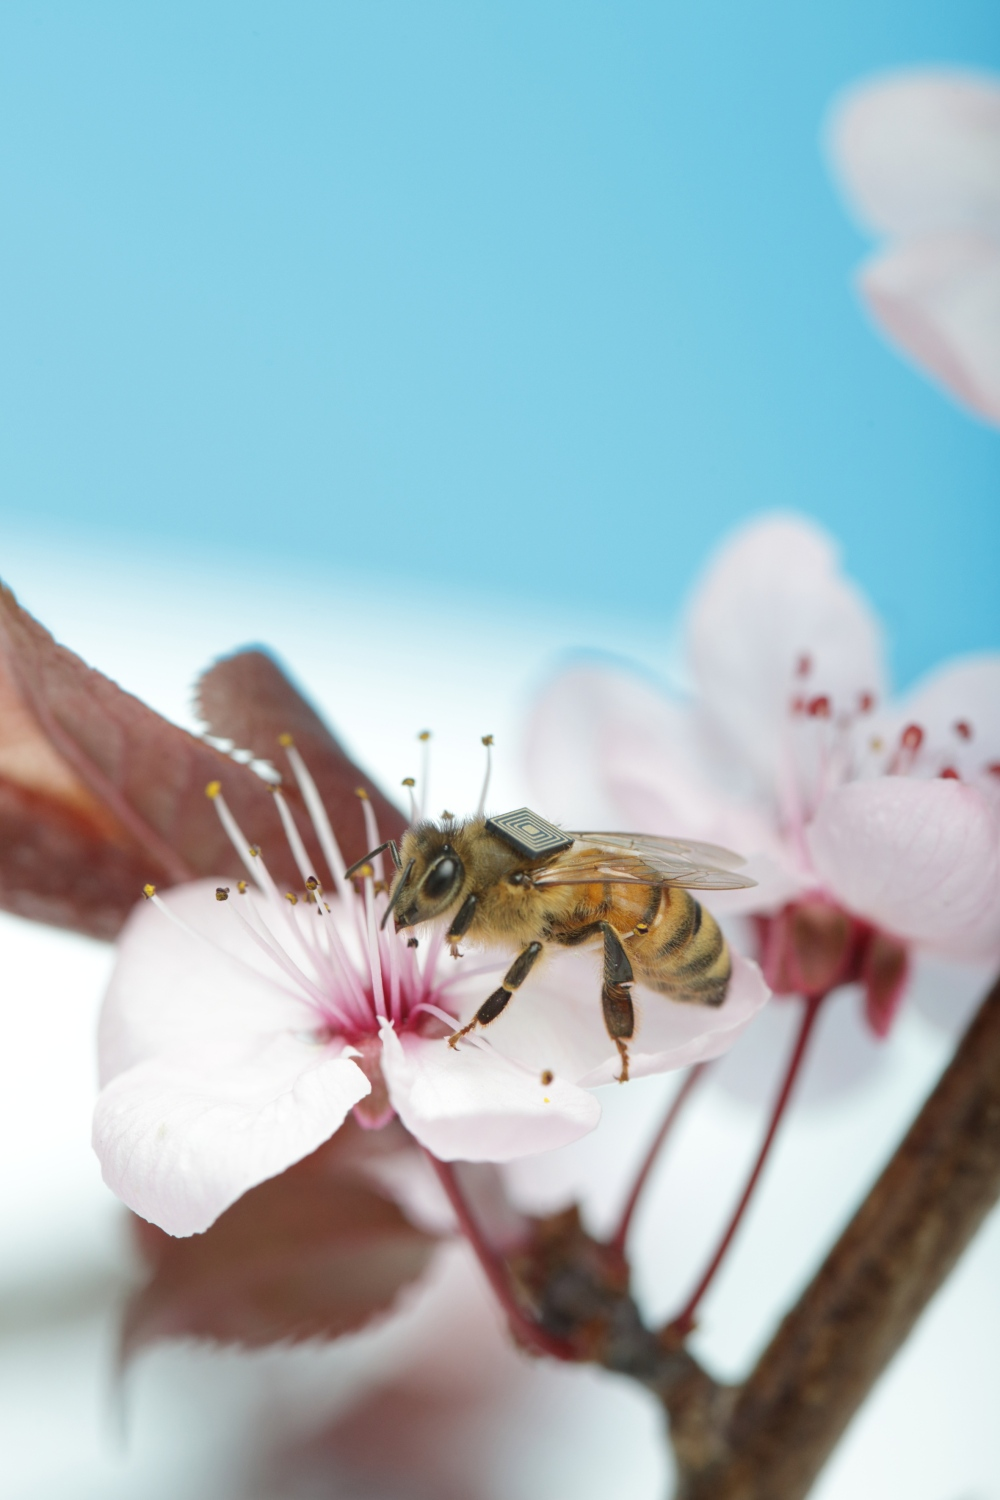 The health of honey bees is under increasing pressure on a global scale. The impact of losing the free pollination services provided by feral honey bees will be farmers paying beekeepers to bring bees in to pollinate their crops, resulting in price hikes in everything from cucumbers and oranges, to cashews and onions. © CSIRO